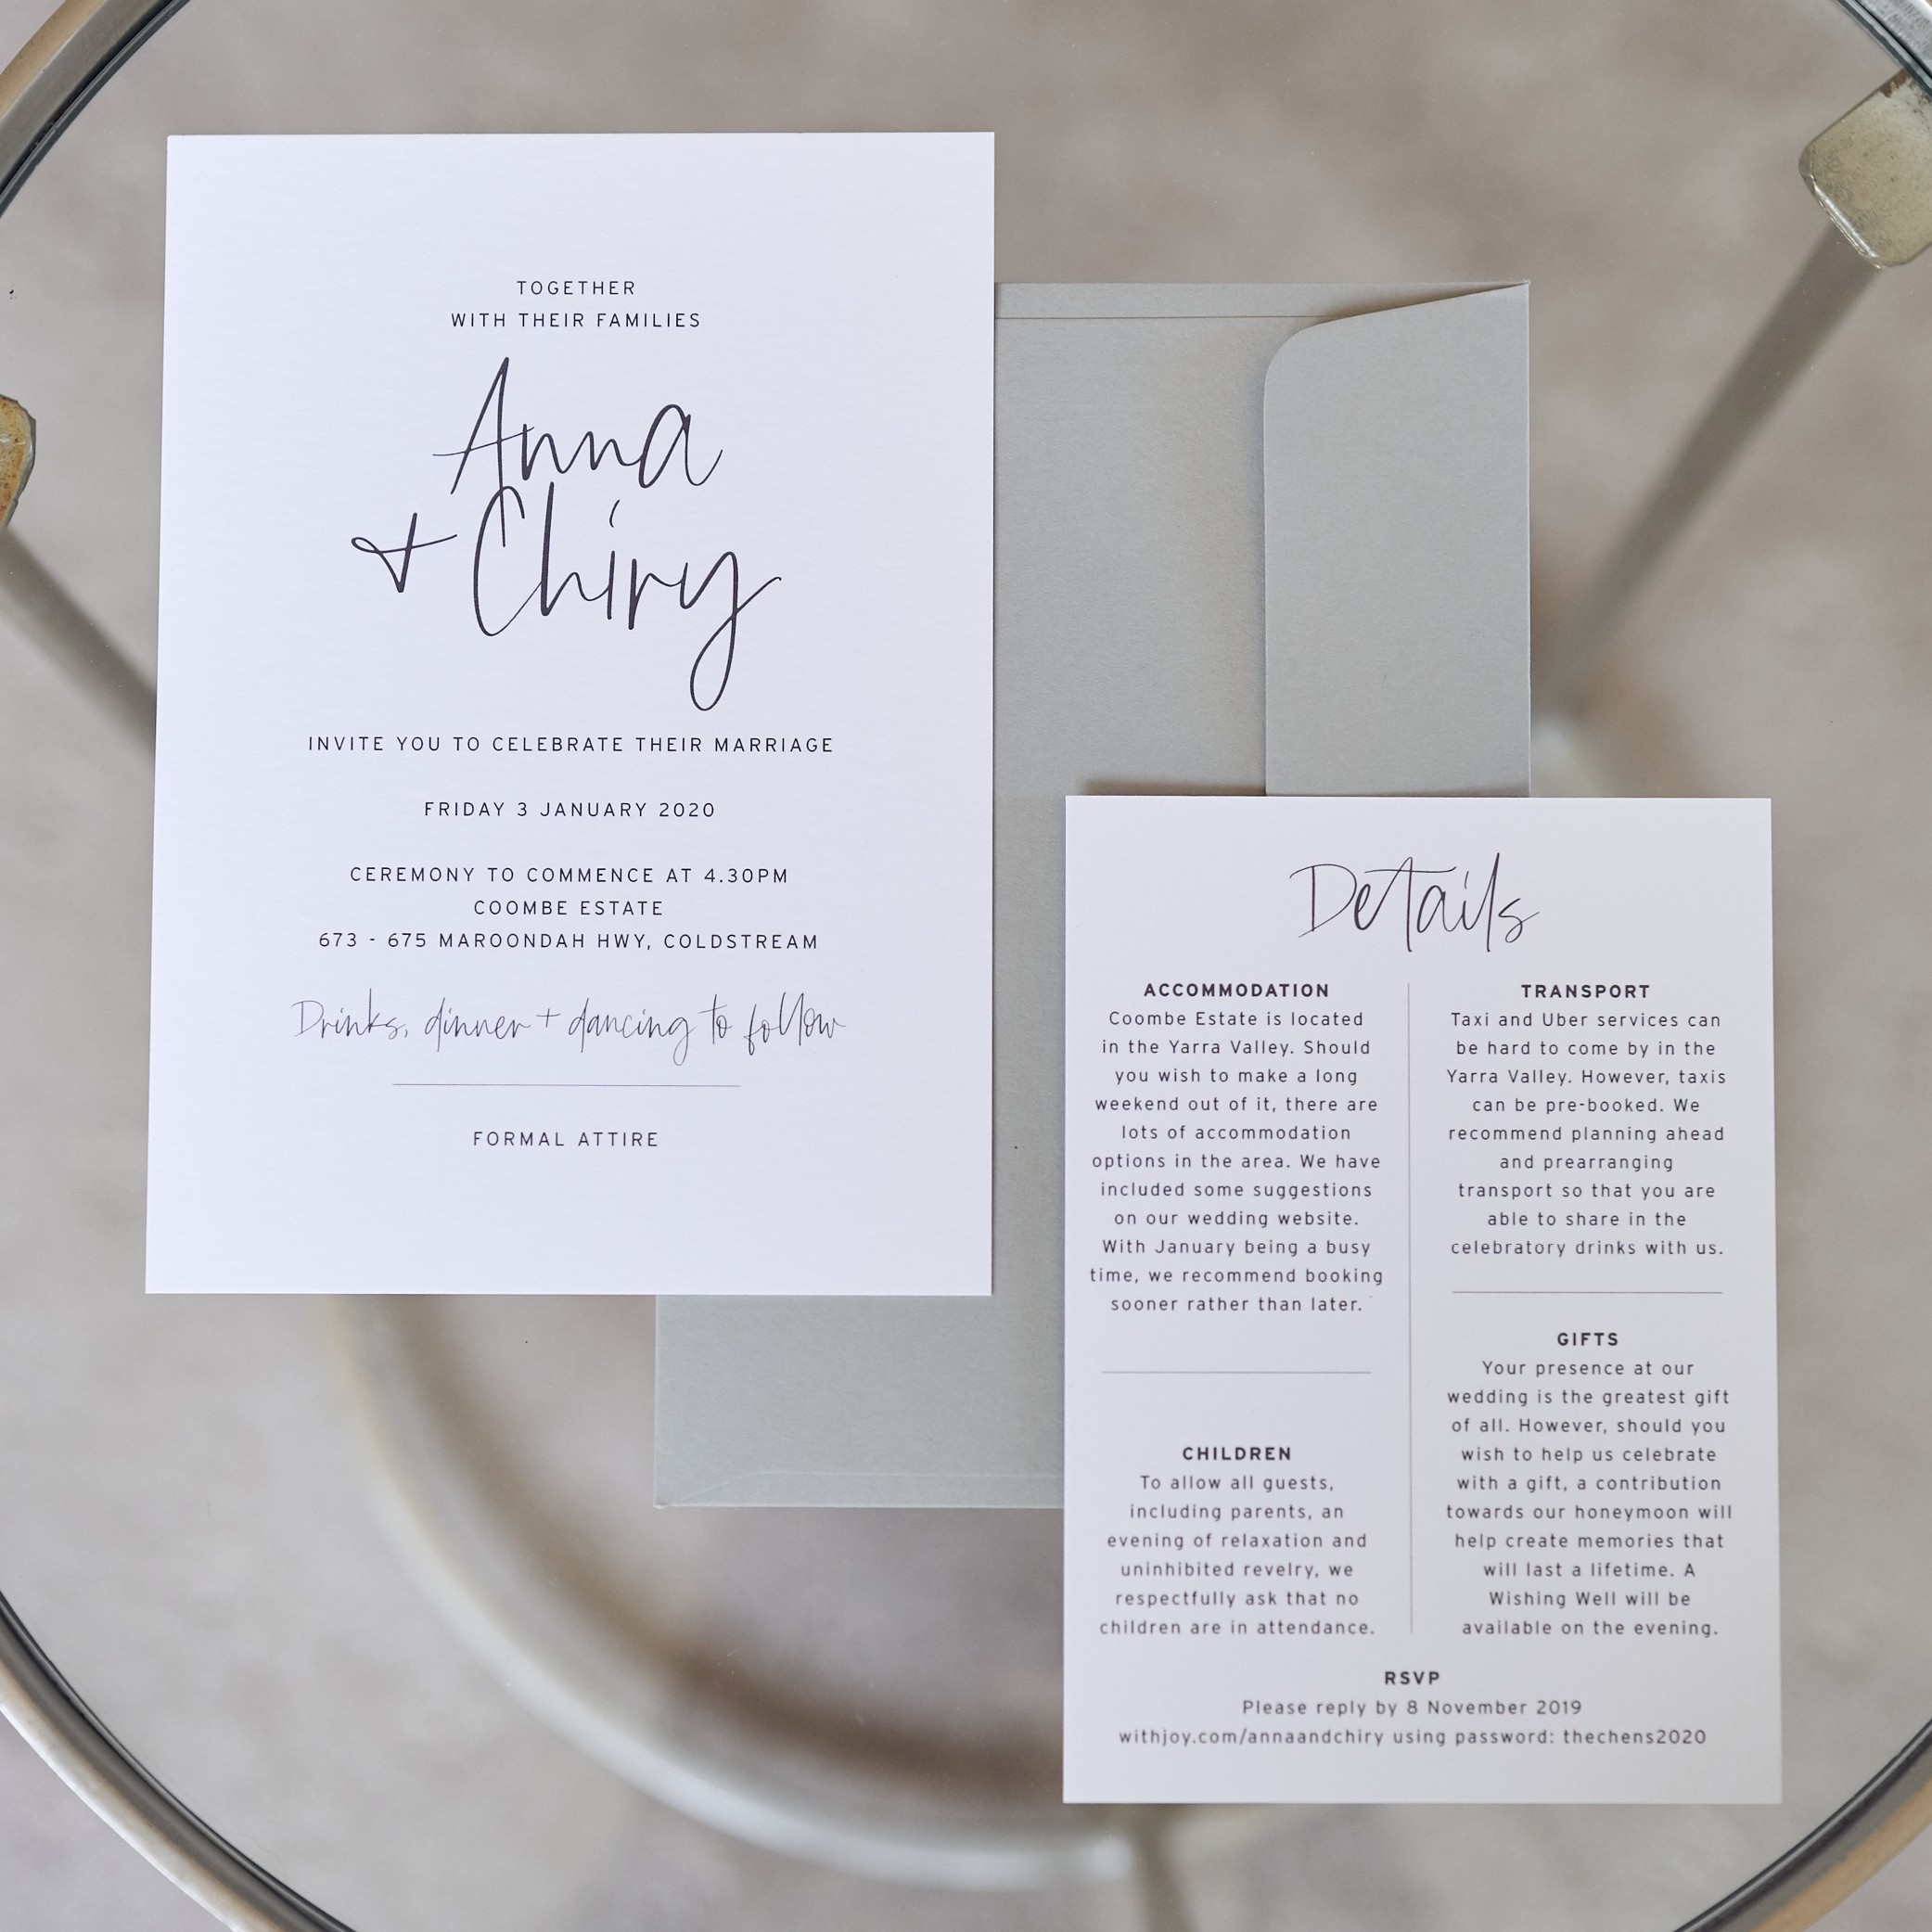 THE DETAILS | Anna + Chiry